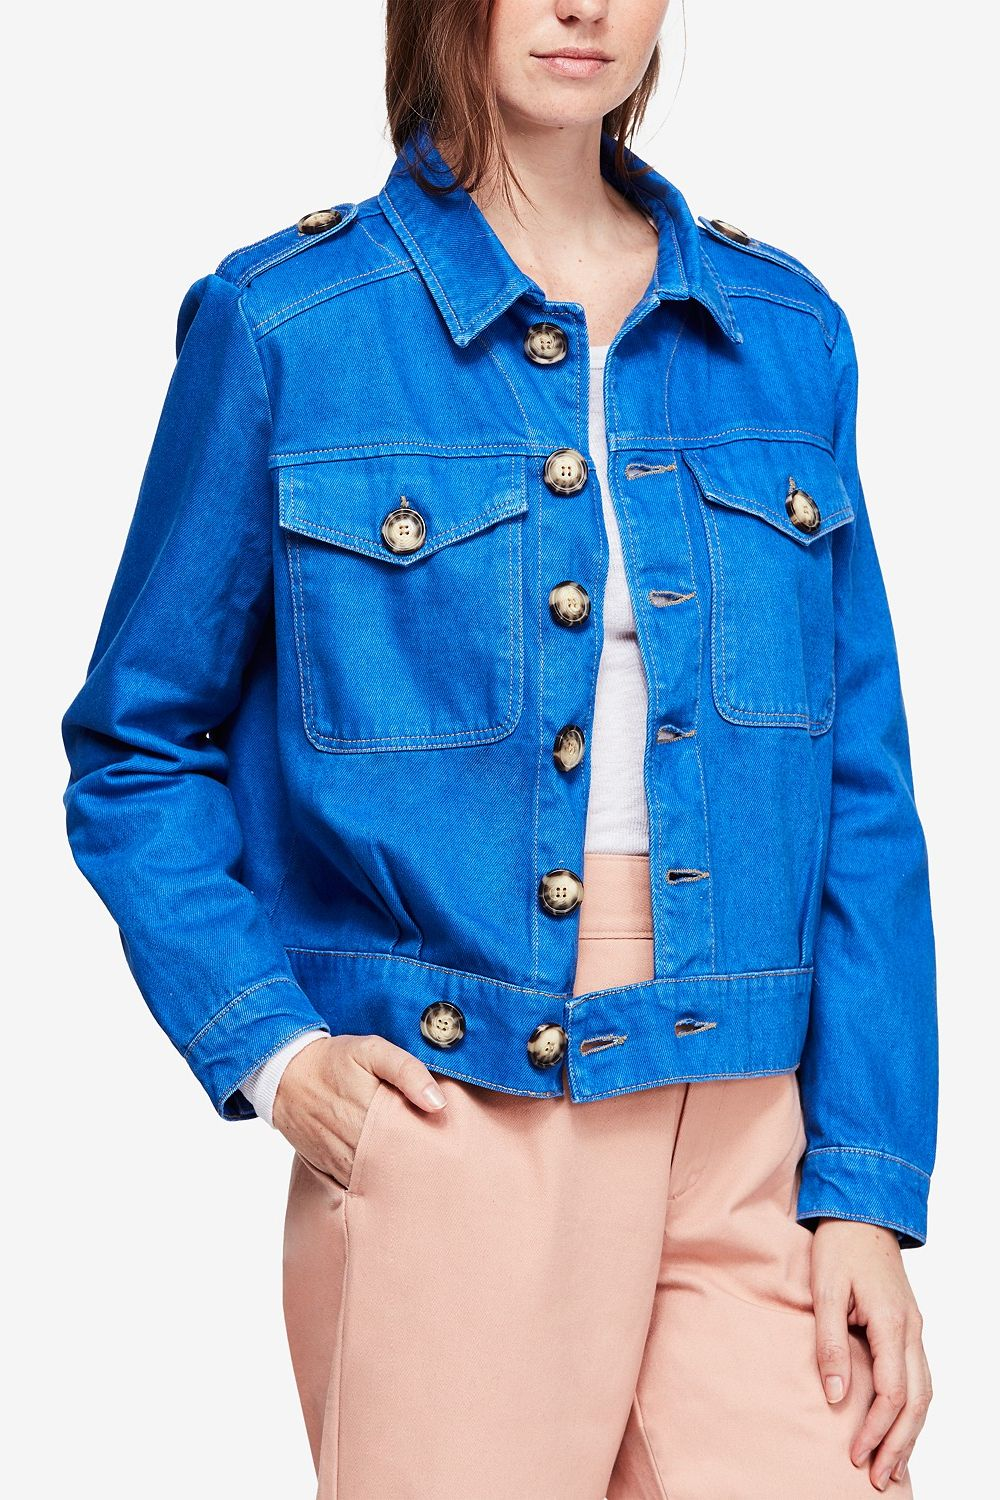 Free People Cotton Eisenhower Denim Jacket